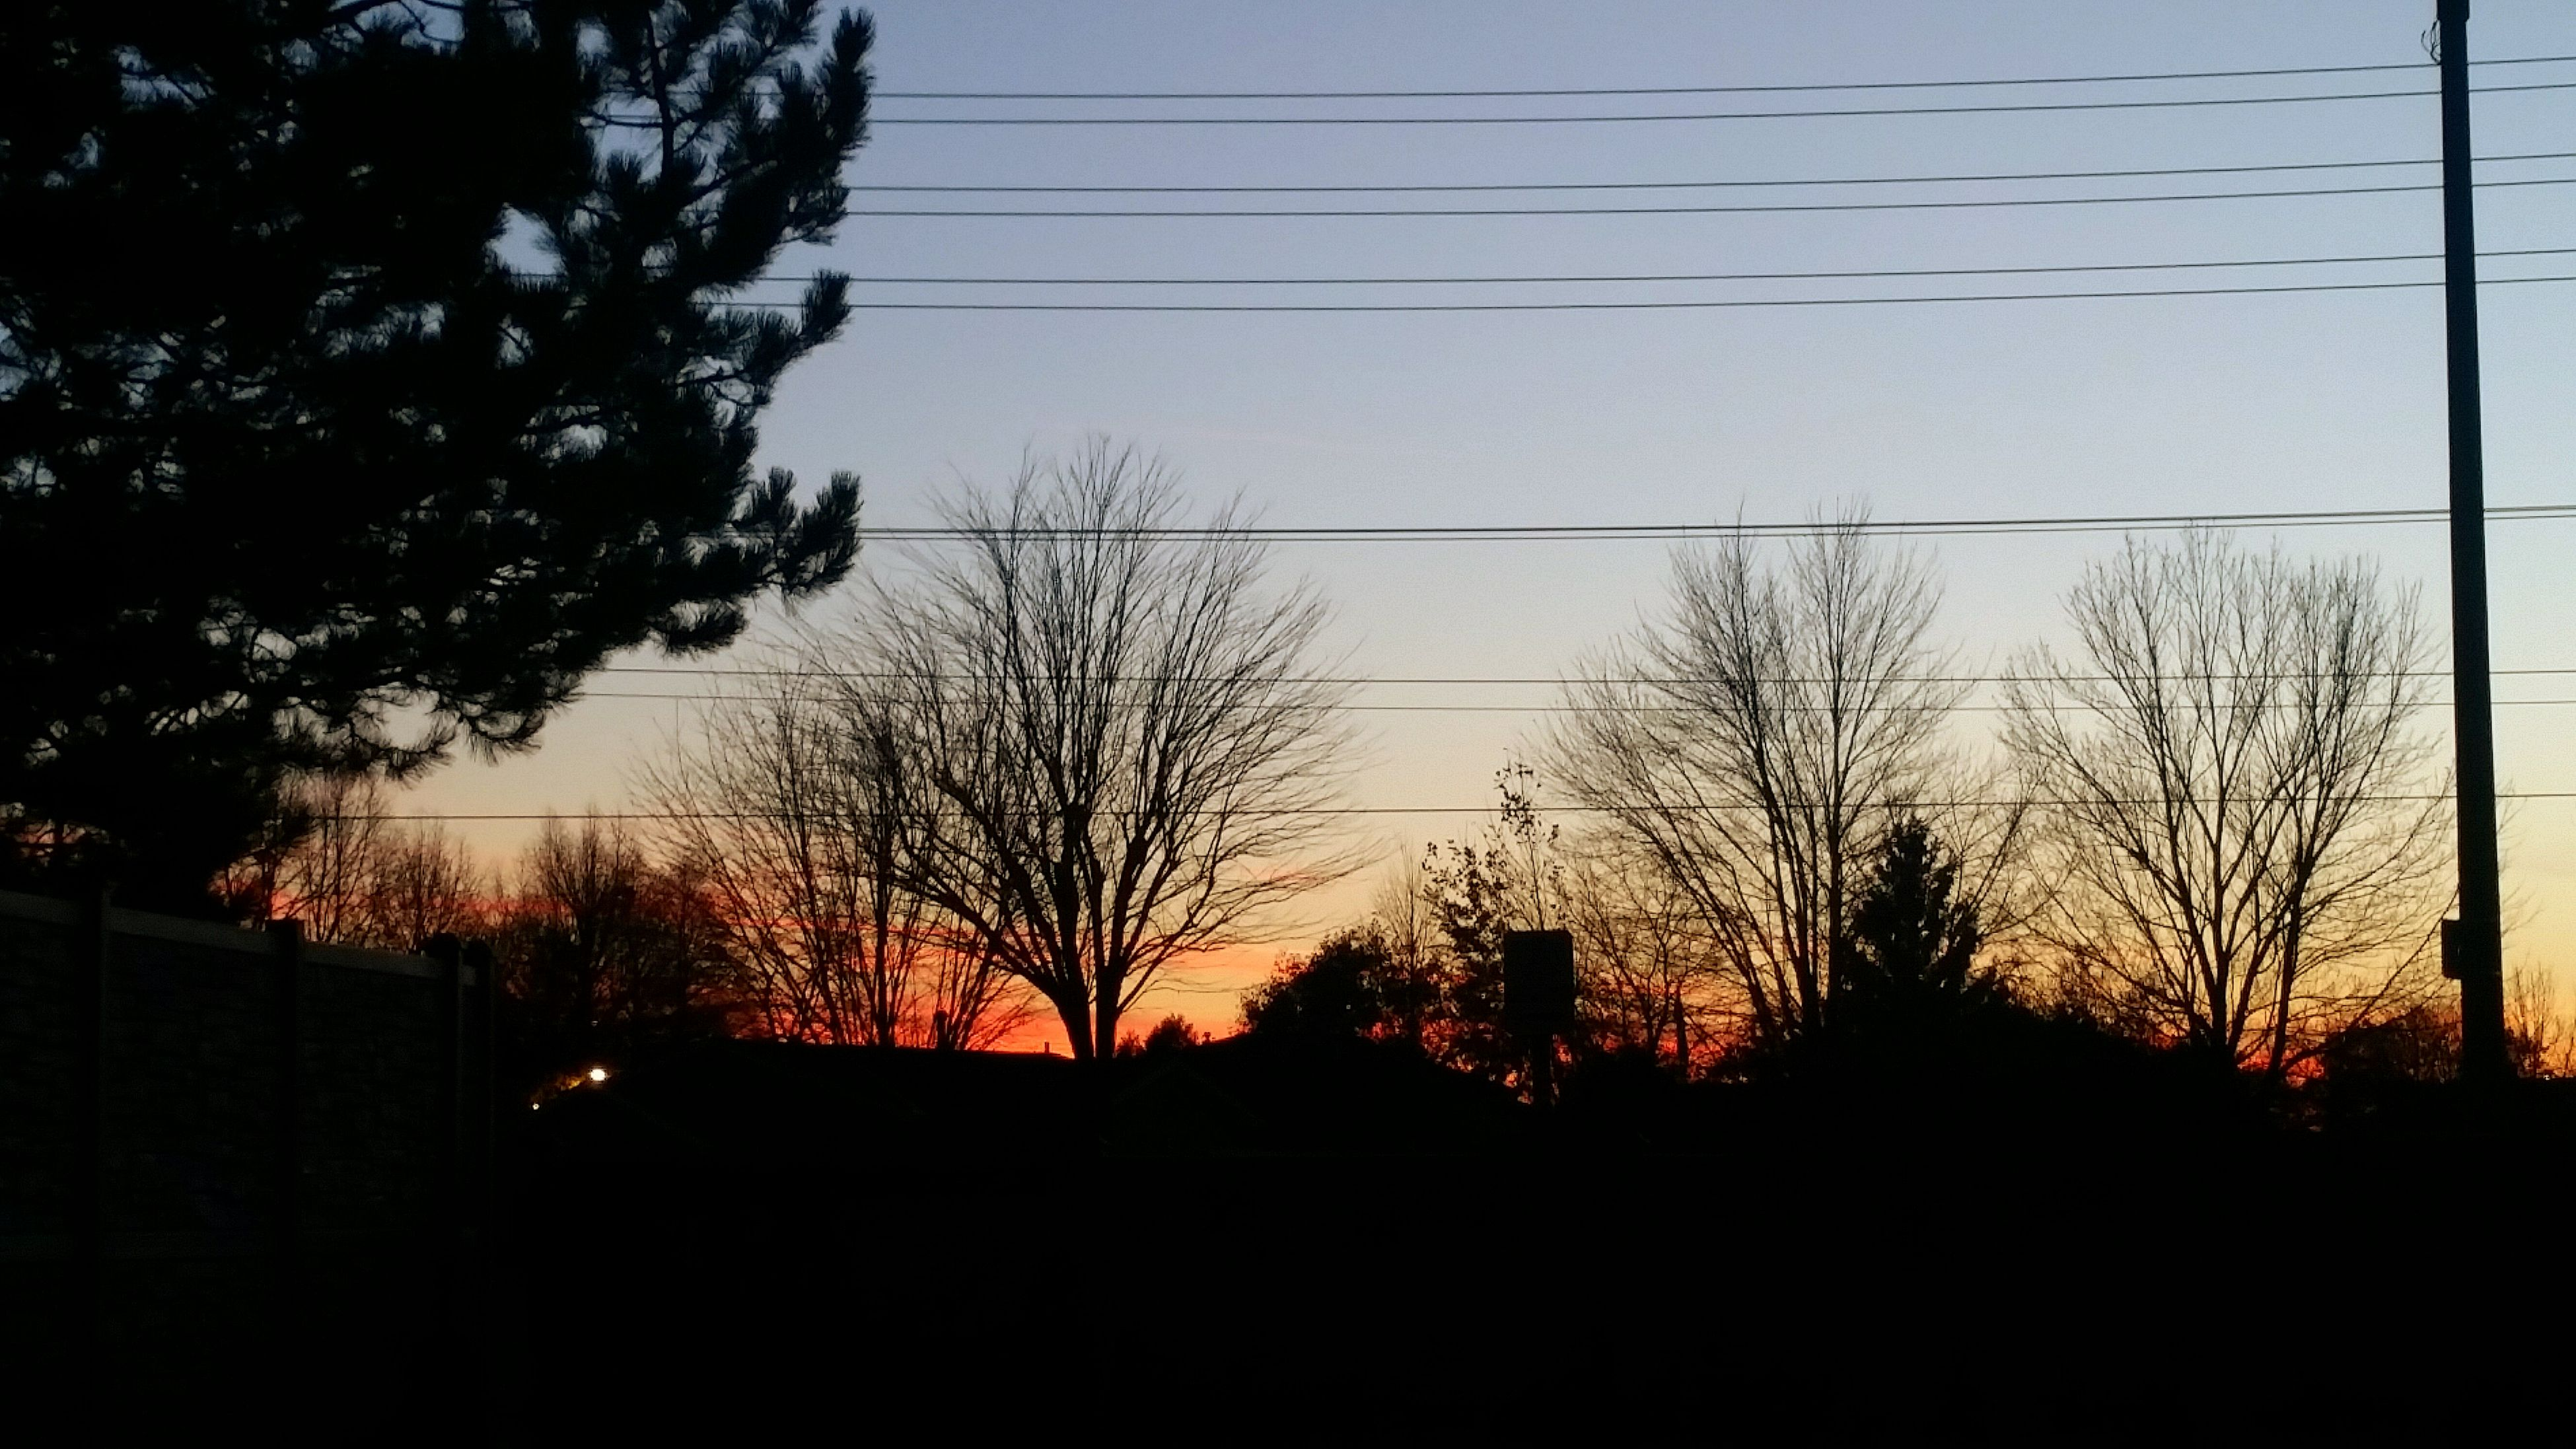 sunset, tree, silhouette, sky, nature, no people, tranquil scene, outdoors, beauty in nature, scenics, dark, tranquility, day